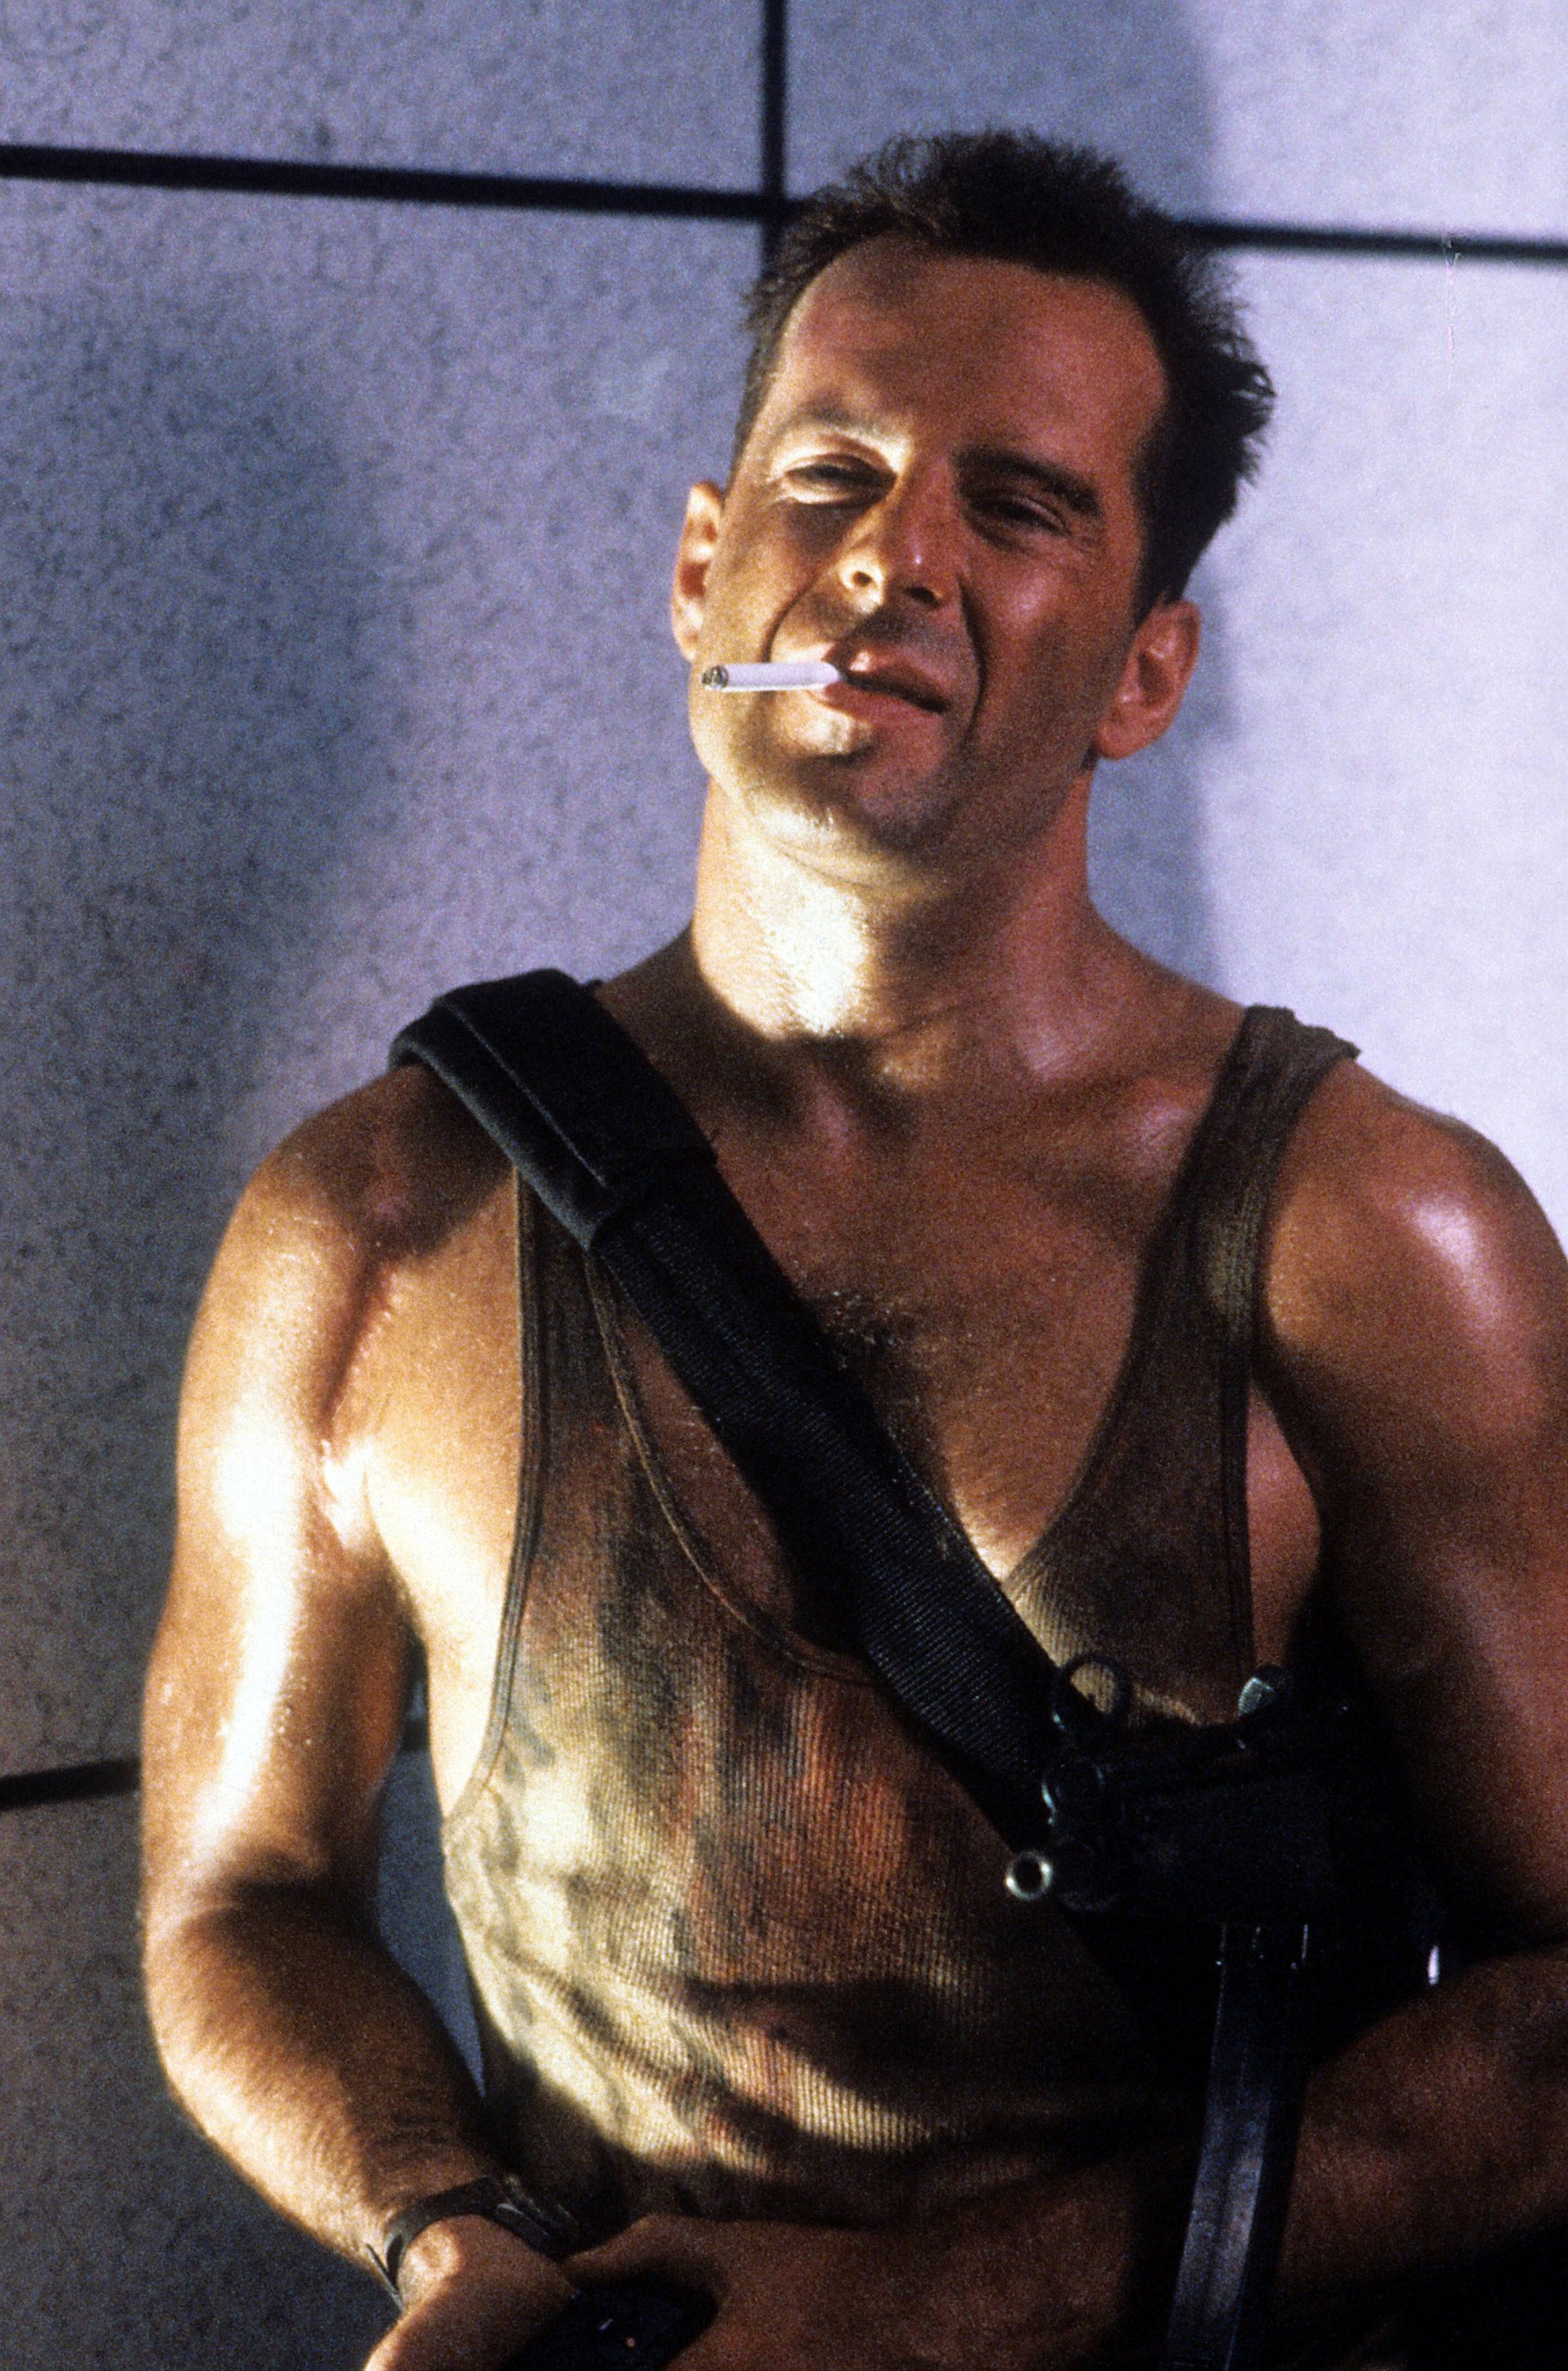 Bruce Willis smokes a cigarette in a scene from the film 'Die Hard', released in 1988. (Getty Images)